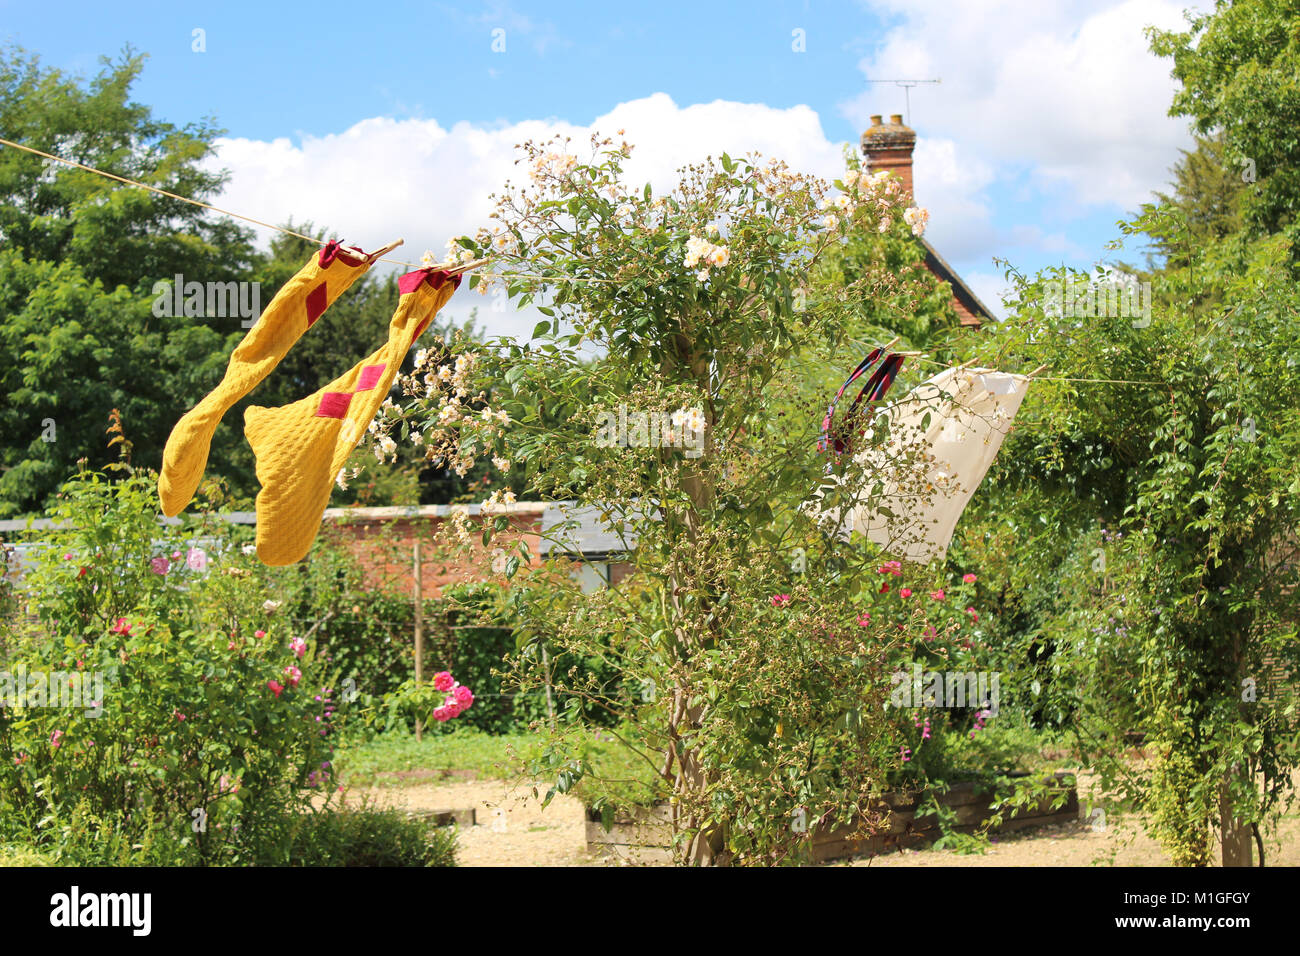 A giant's clothes drying on the washing line at the National Trust property, Mottisfont, in Romey. - Stock Image